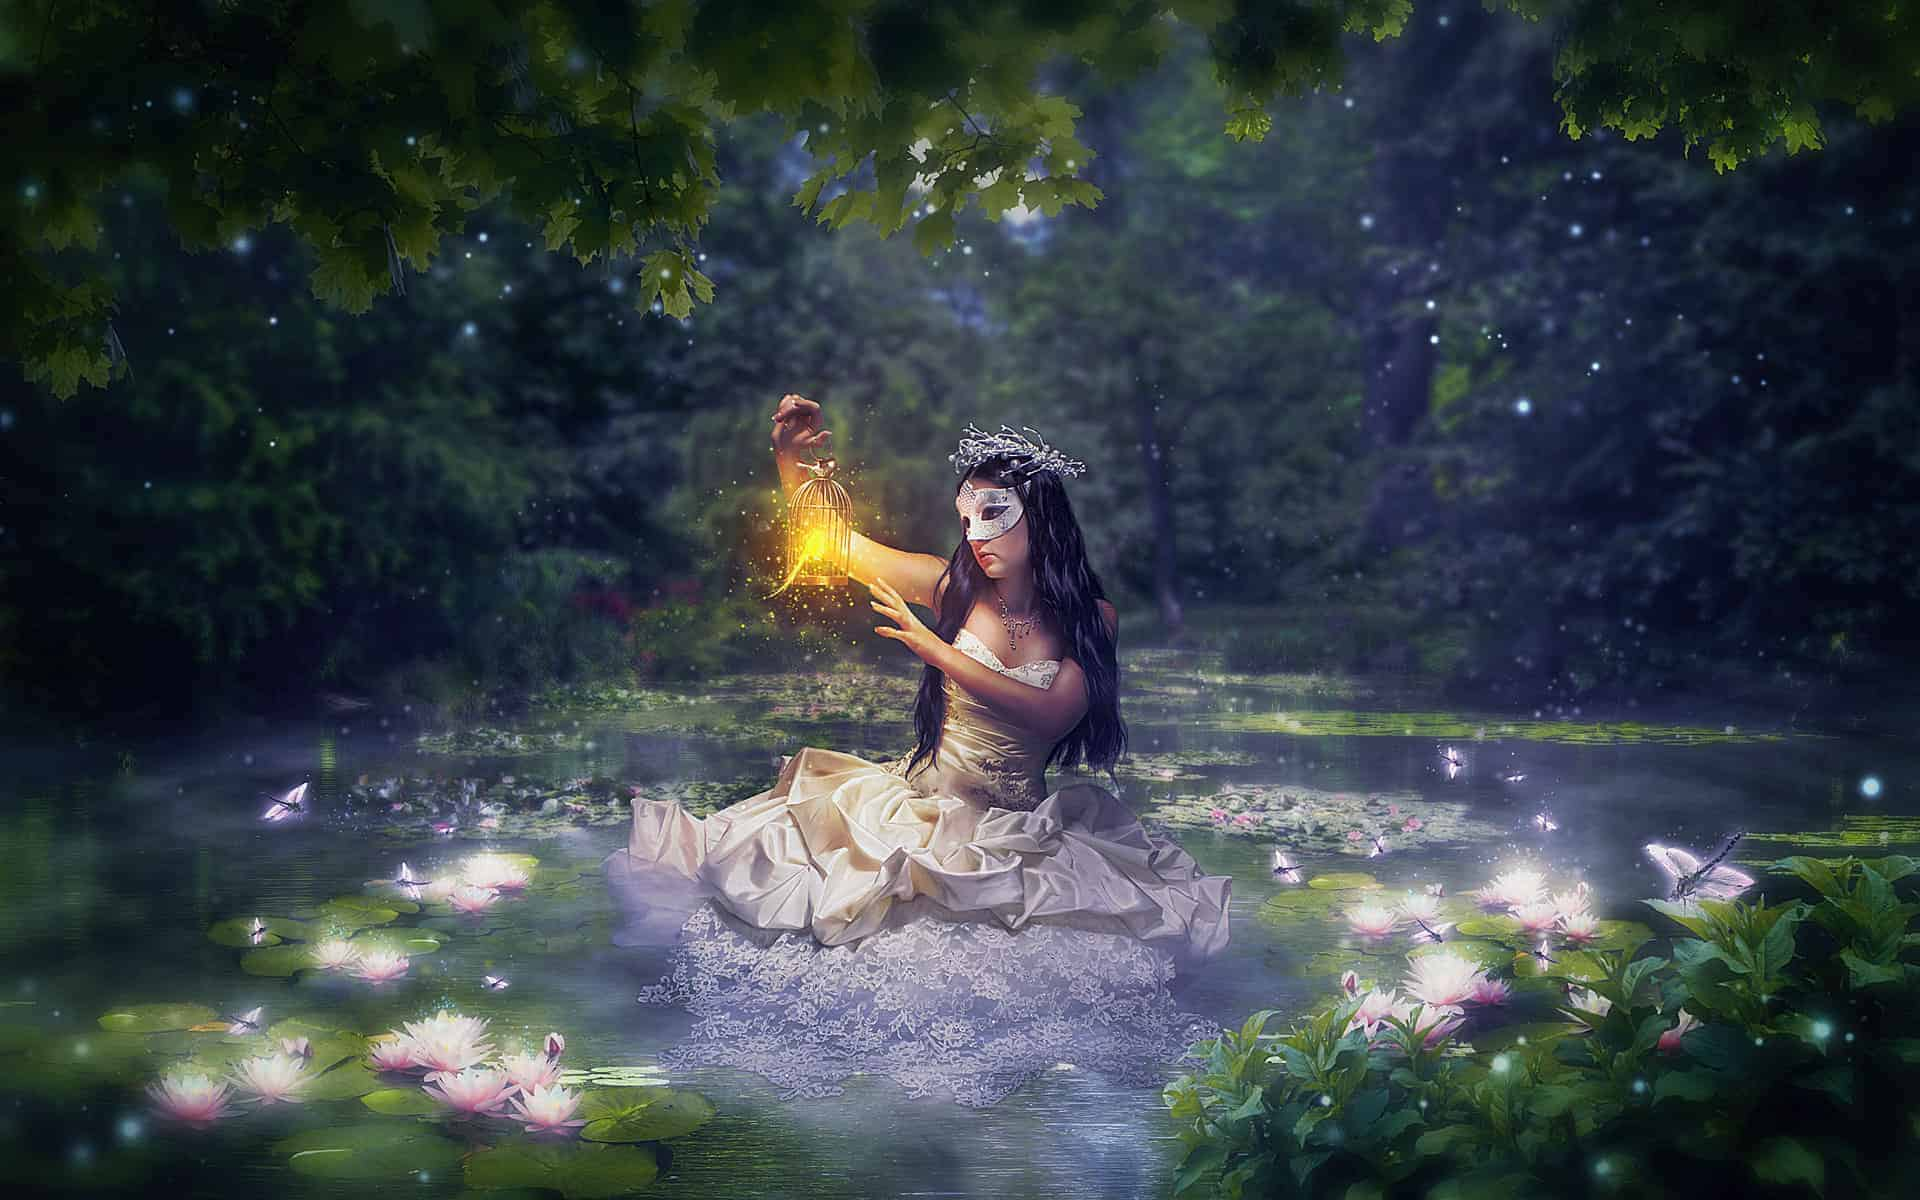 Create a Night Fairy Tale of a Mysterious Girl in Photoshop